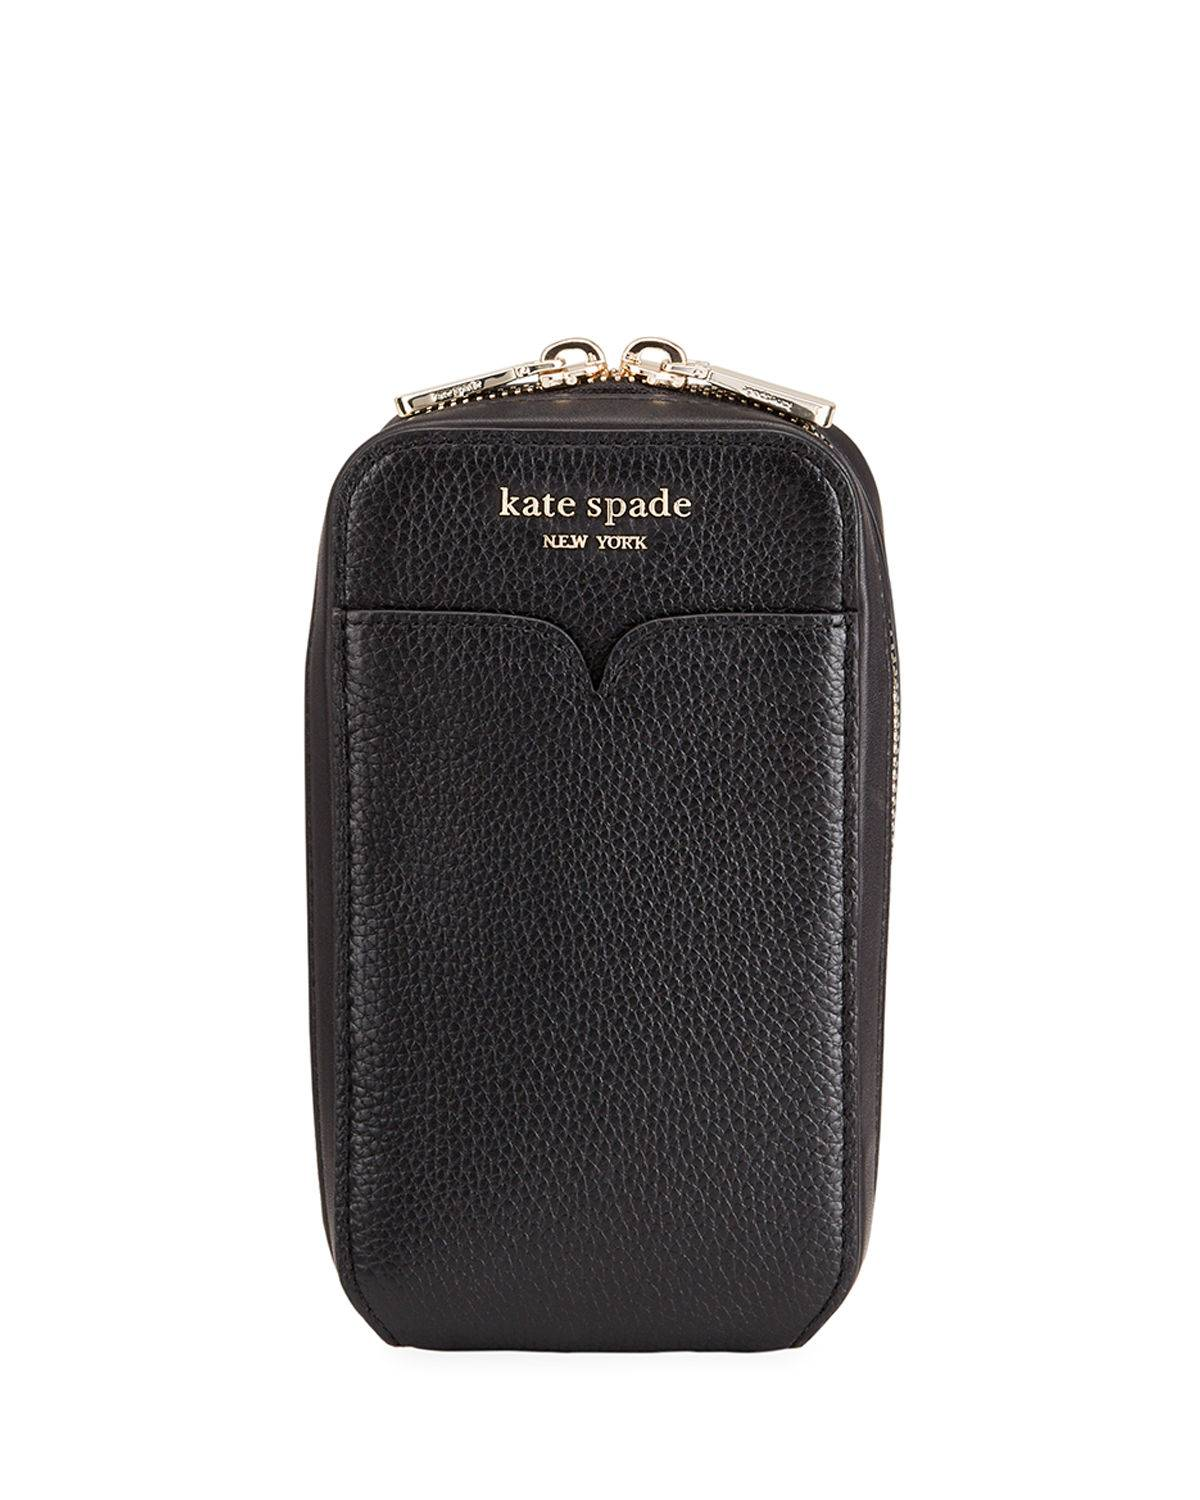 kate spade new york leather zip phone pouch bag